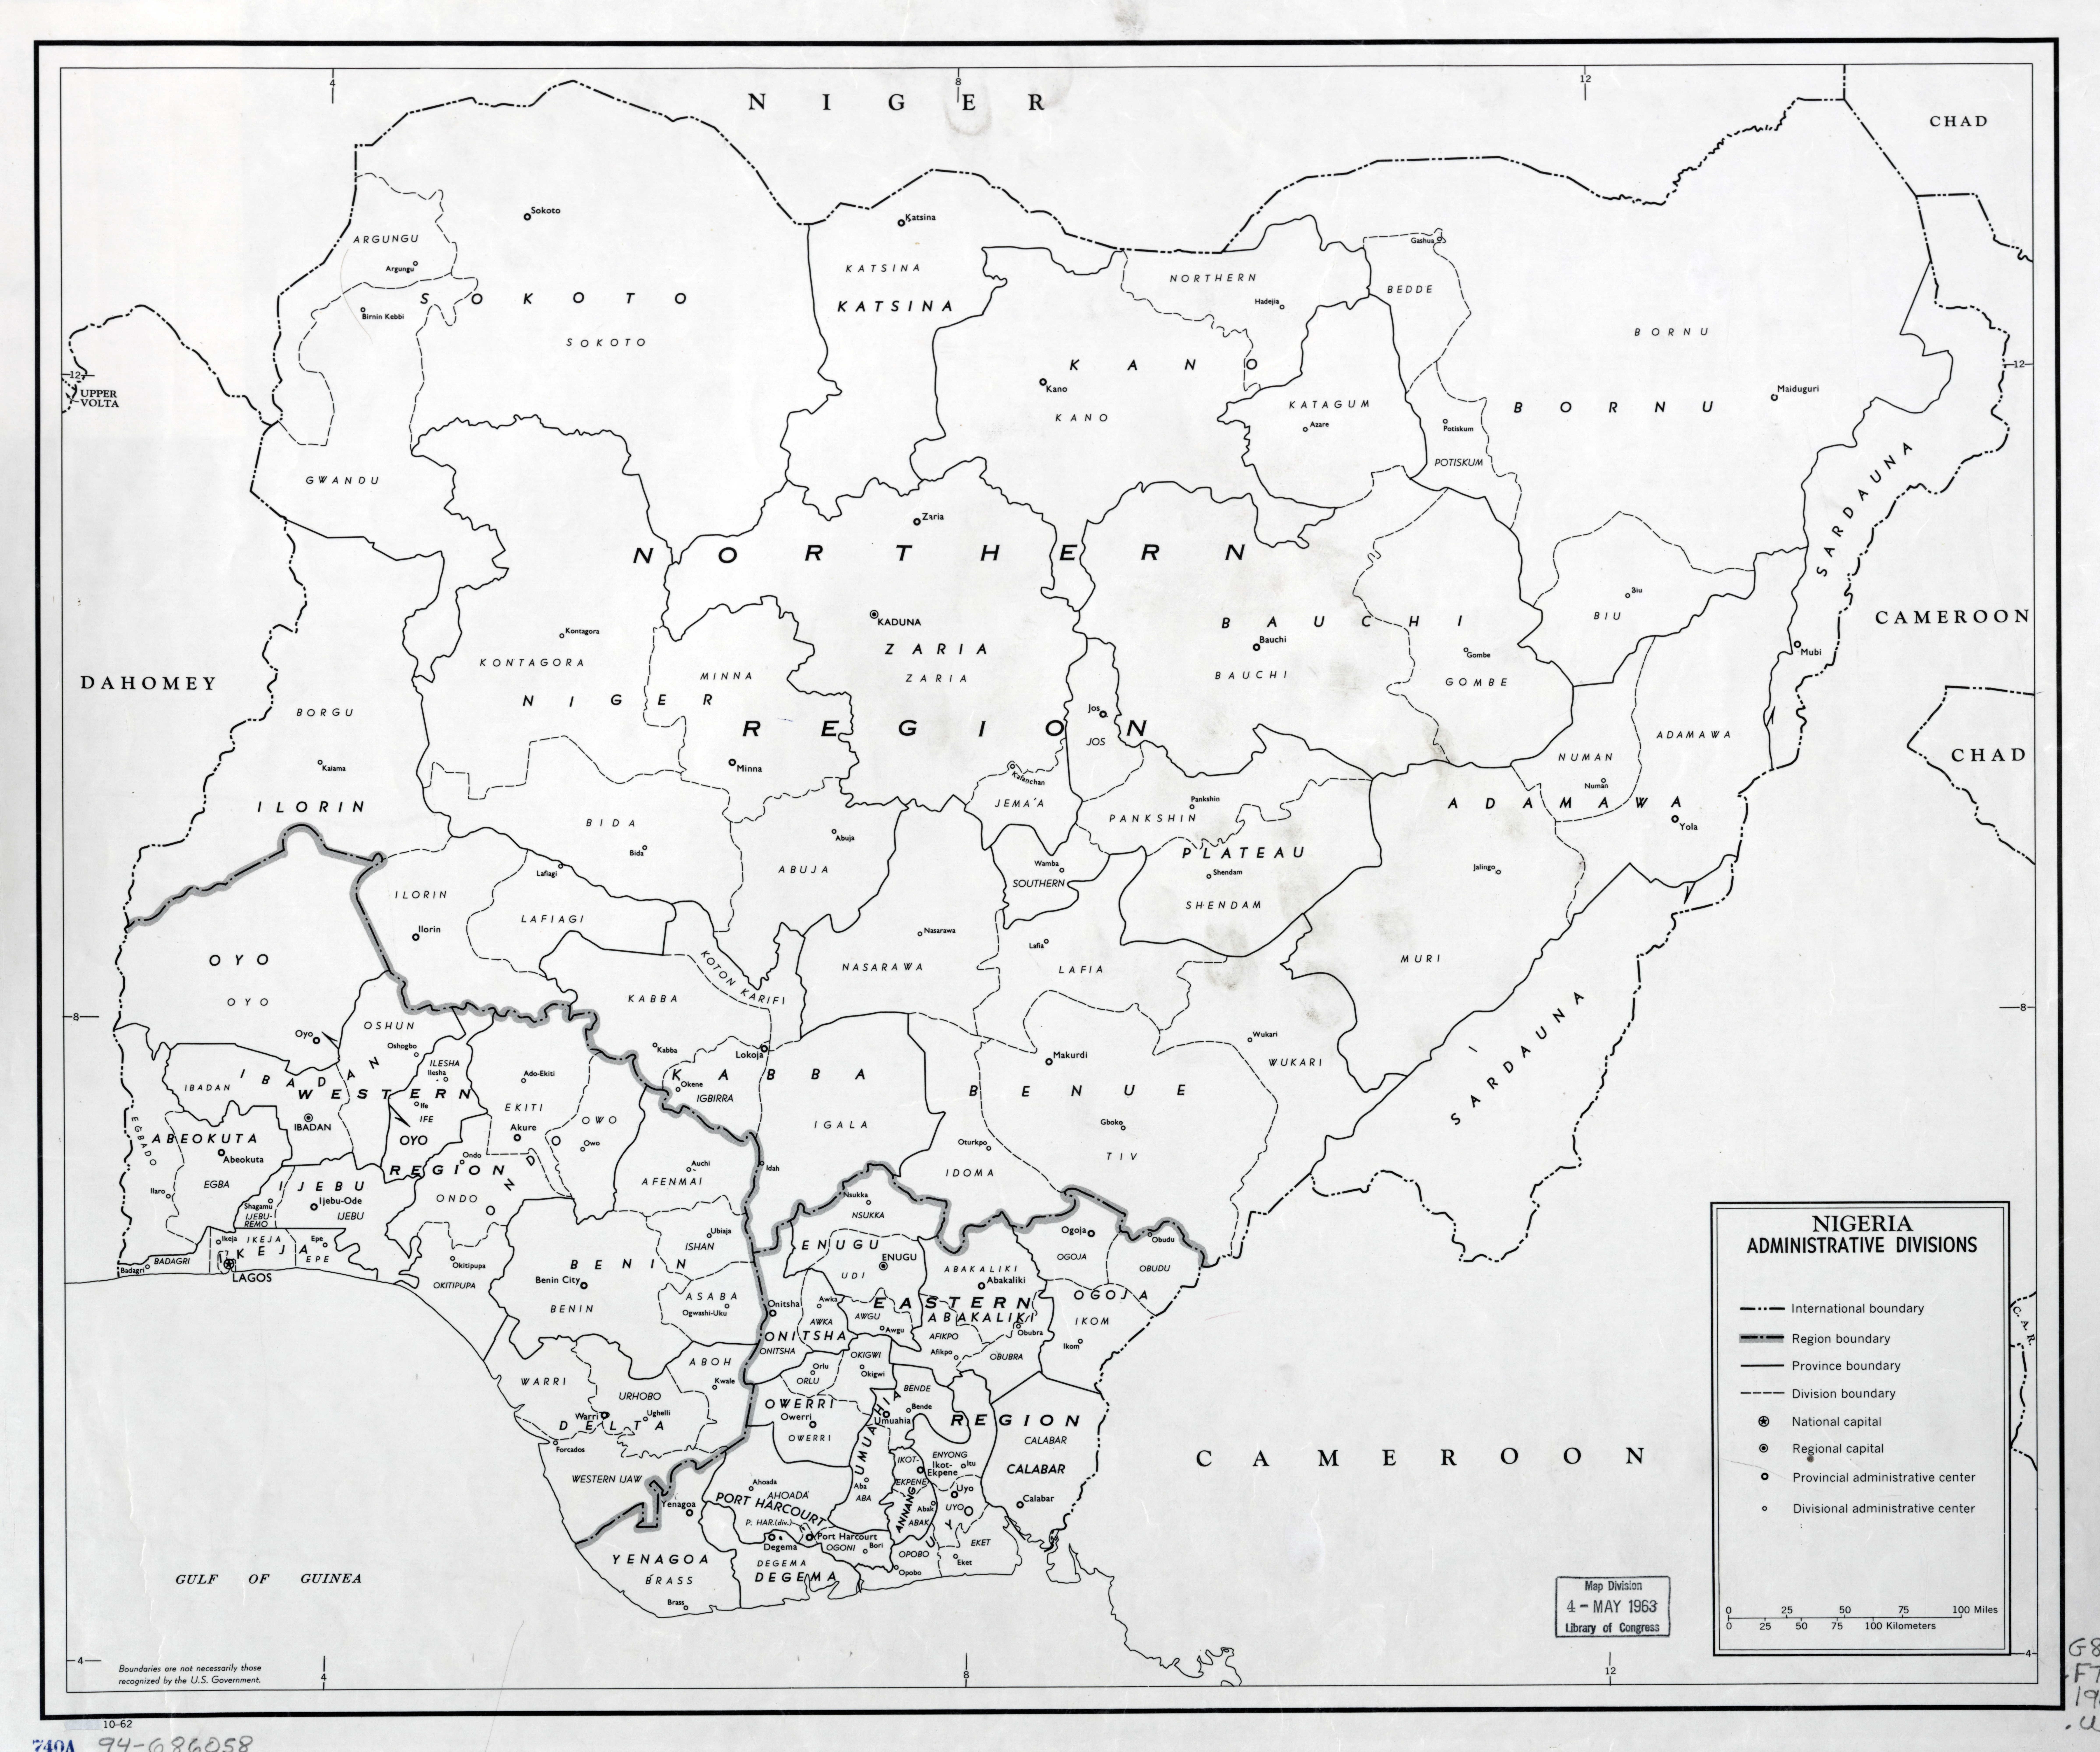 Large scale detailed administrative divisions map of Nigeria 1962